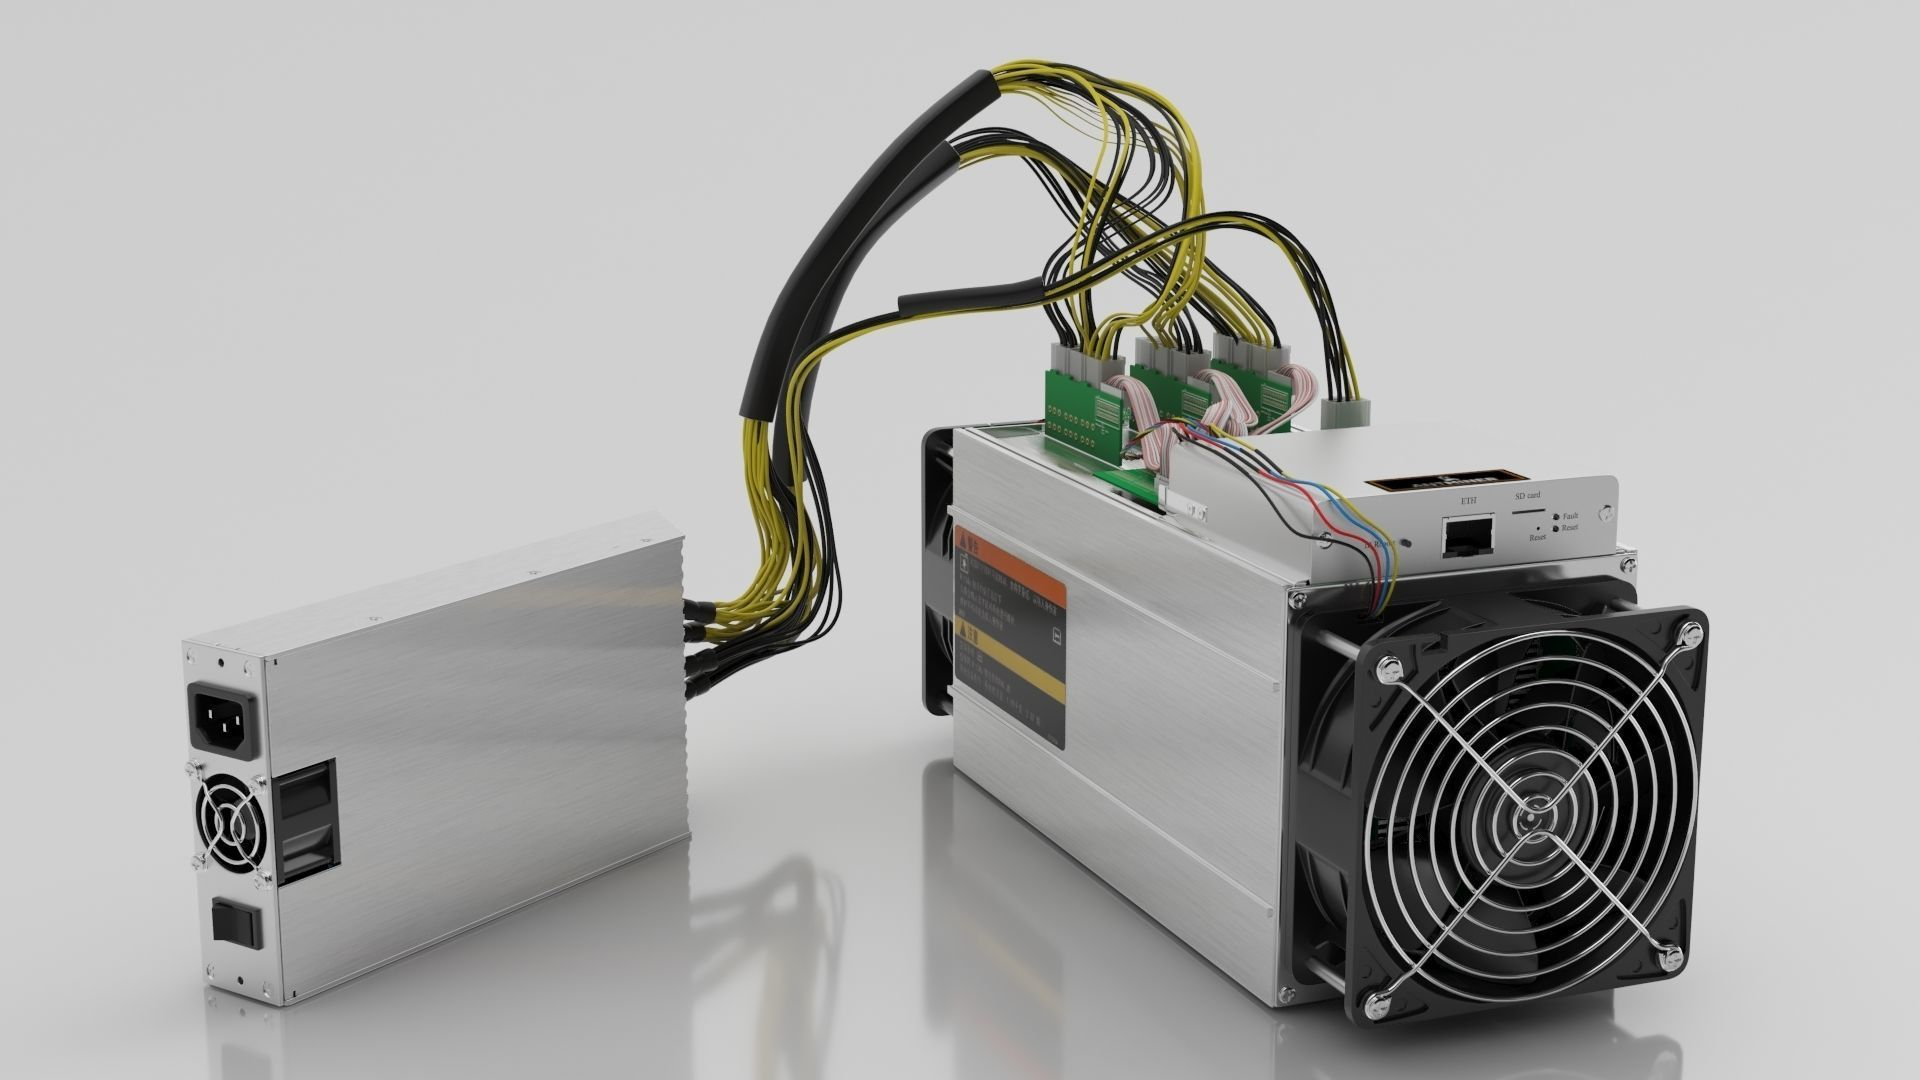 Antminer Cryptocurrency Mining Hardware and Power Supply